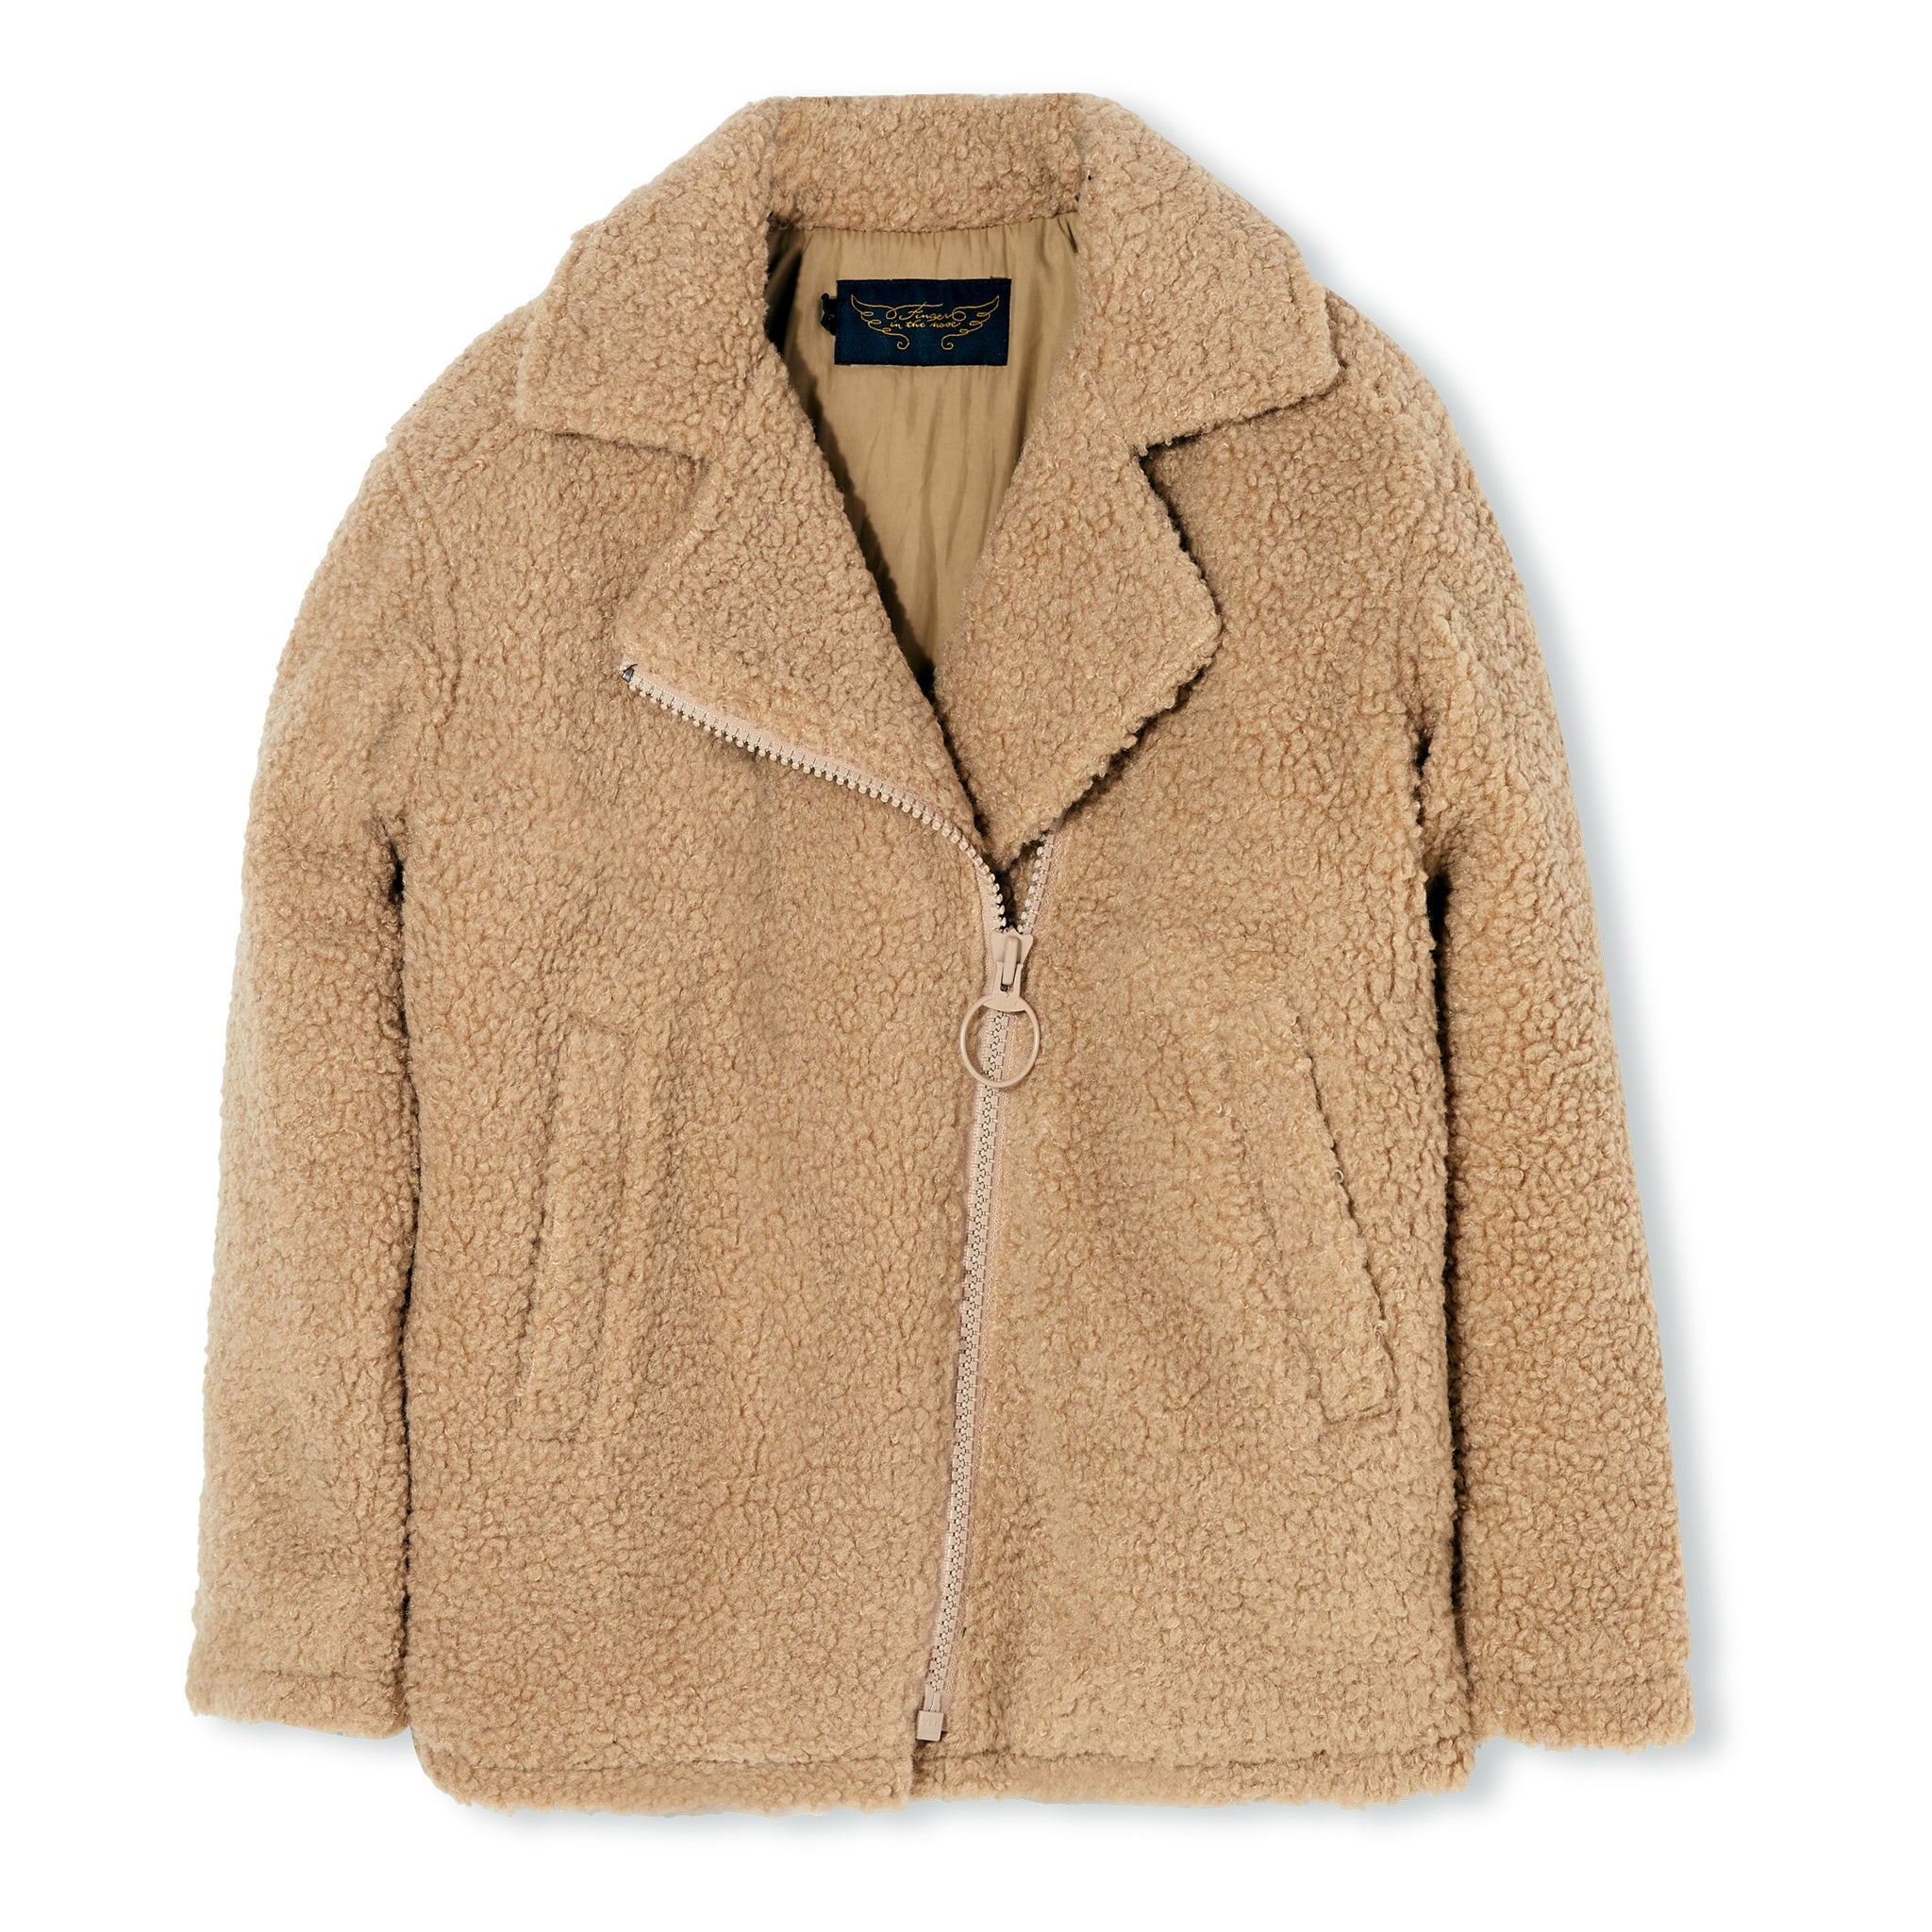 DARKSTAR Beige - Oversized Jacket 1